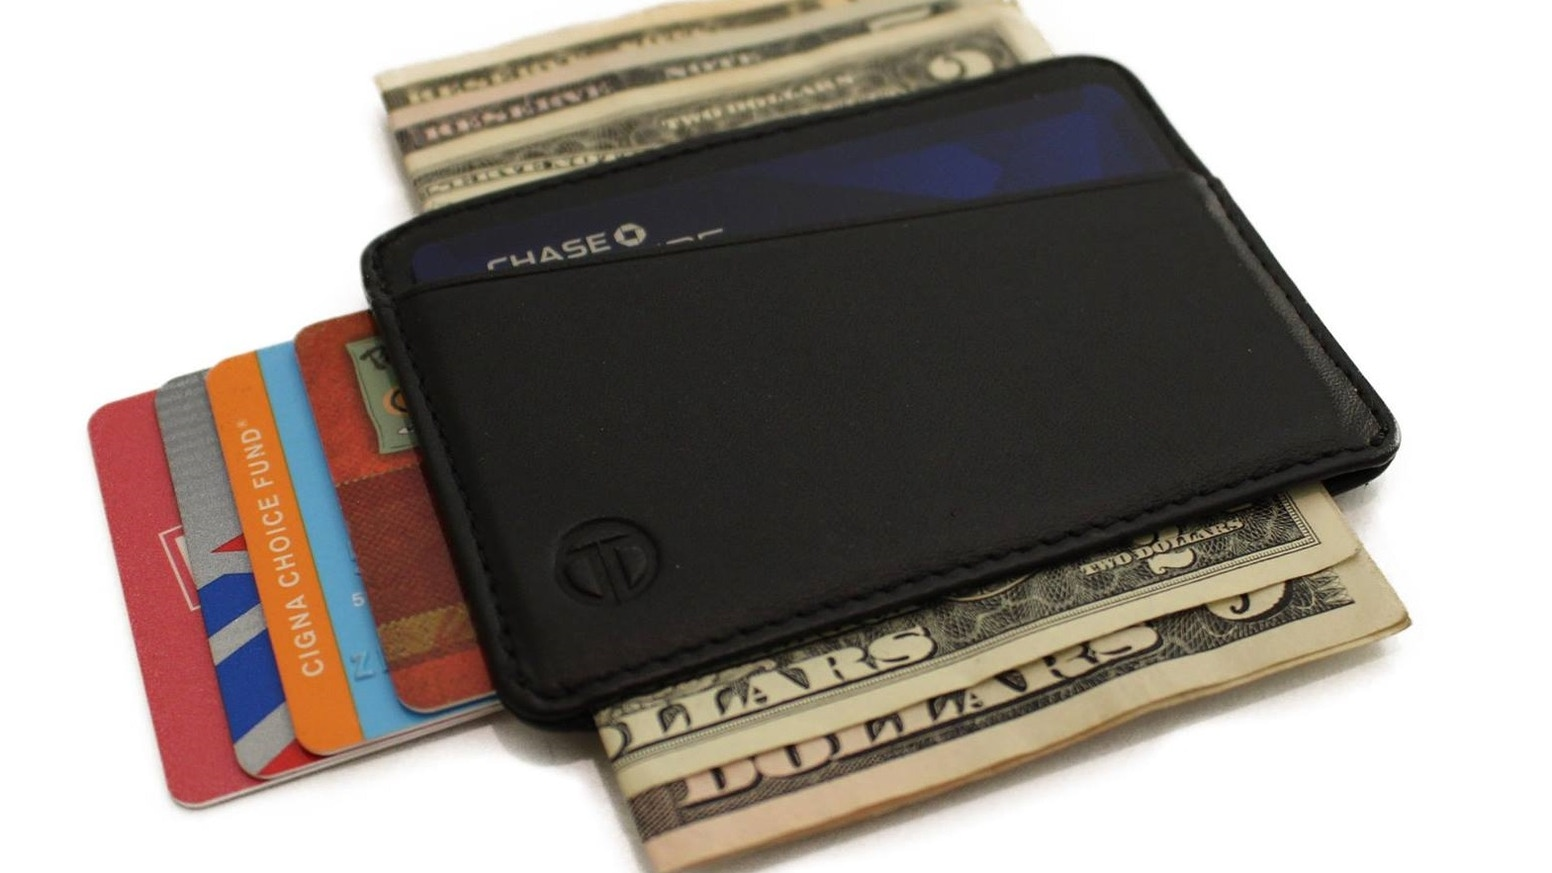 Super slim leather wallet that adapts to your needs, cash, cards and more. A thin minimalist designed wallet that is stylish and functional.